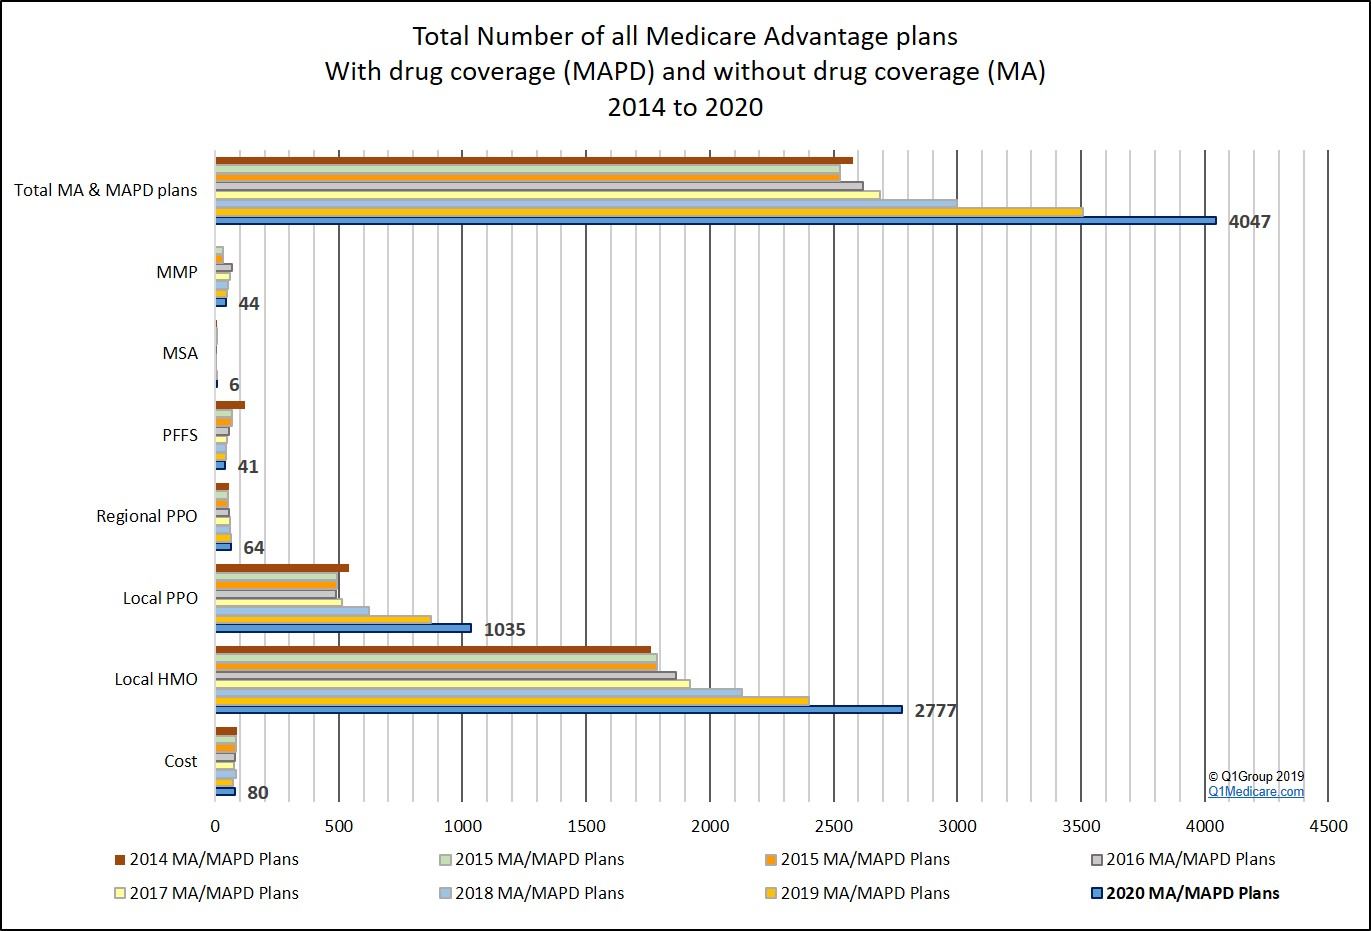 More 2020 Medicare Advantage plan choices, with increases in HMO and local PPO options